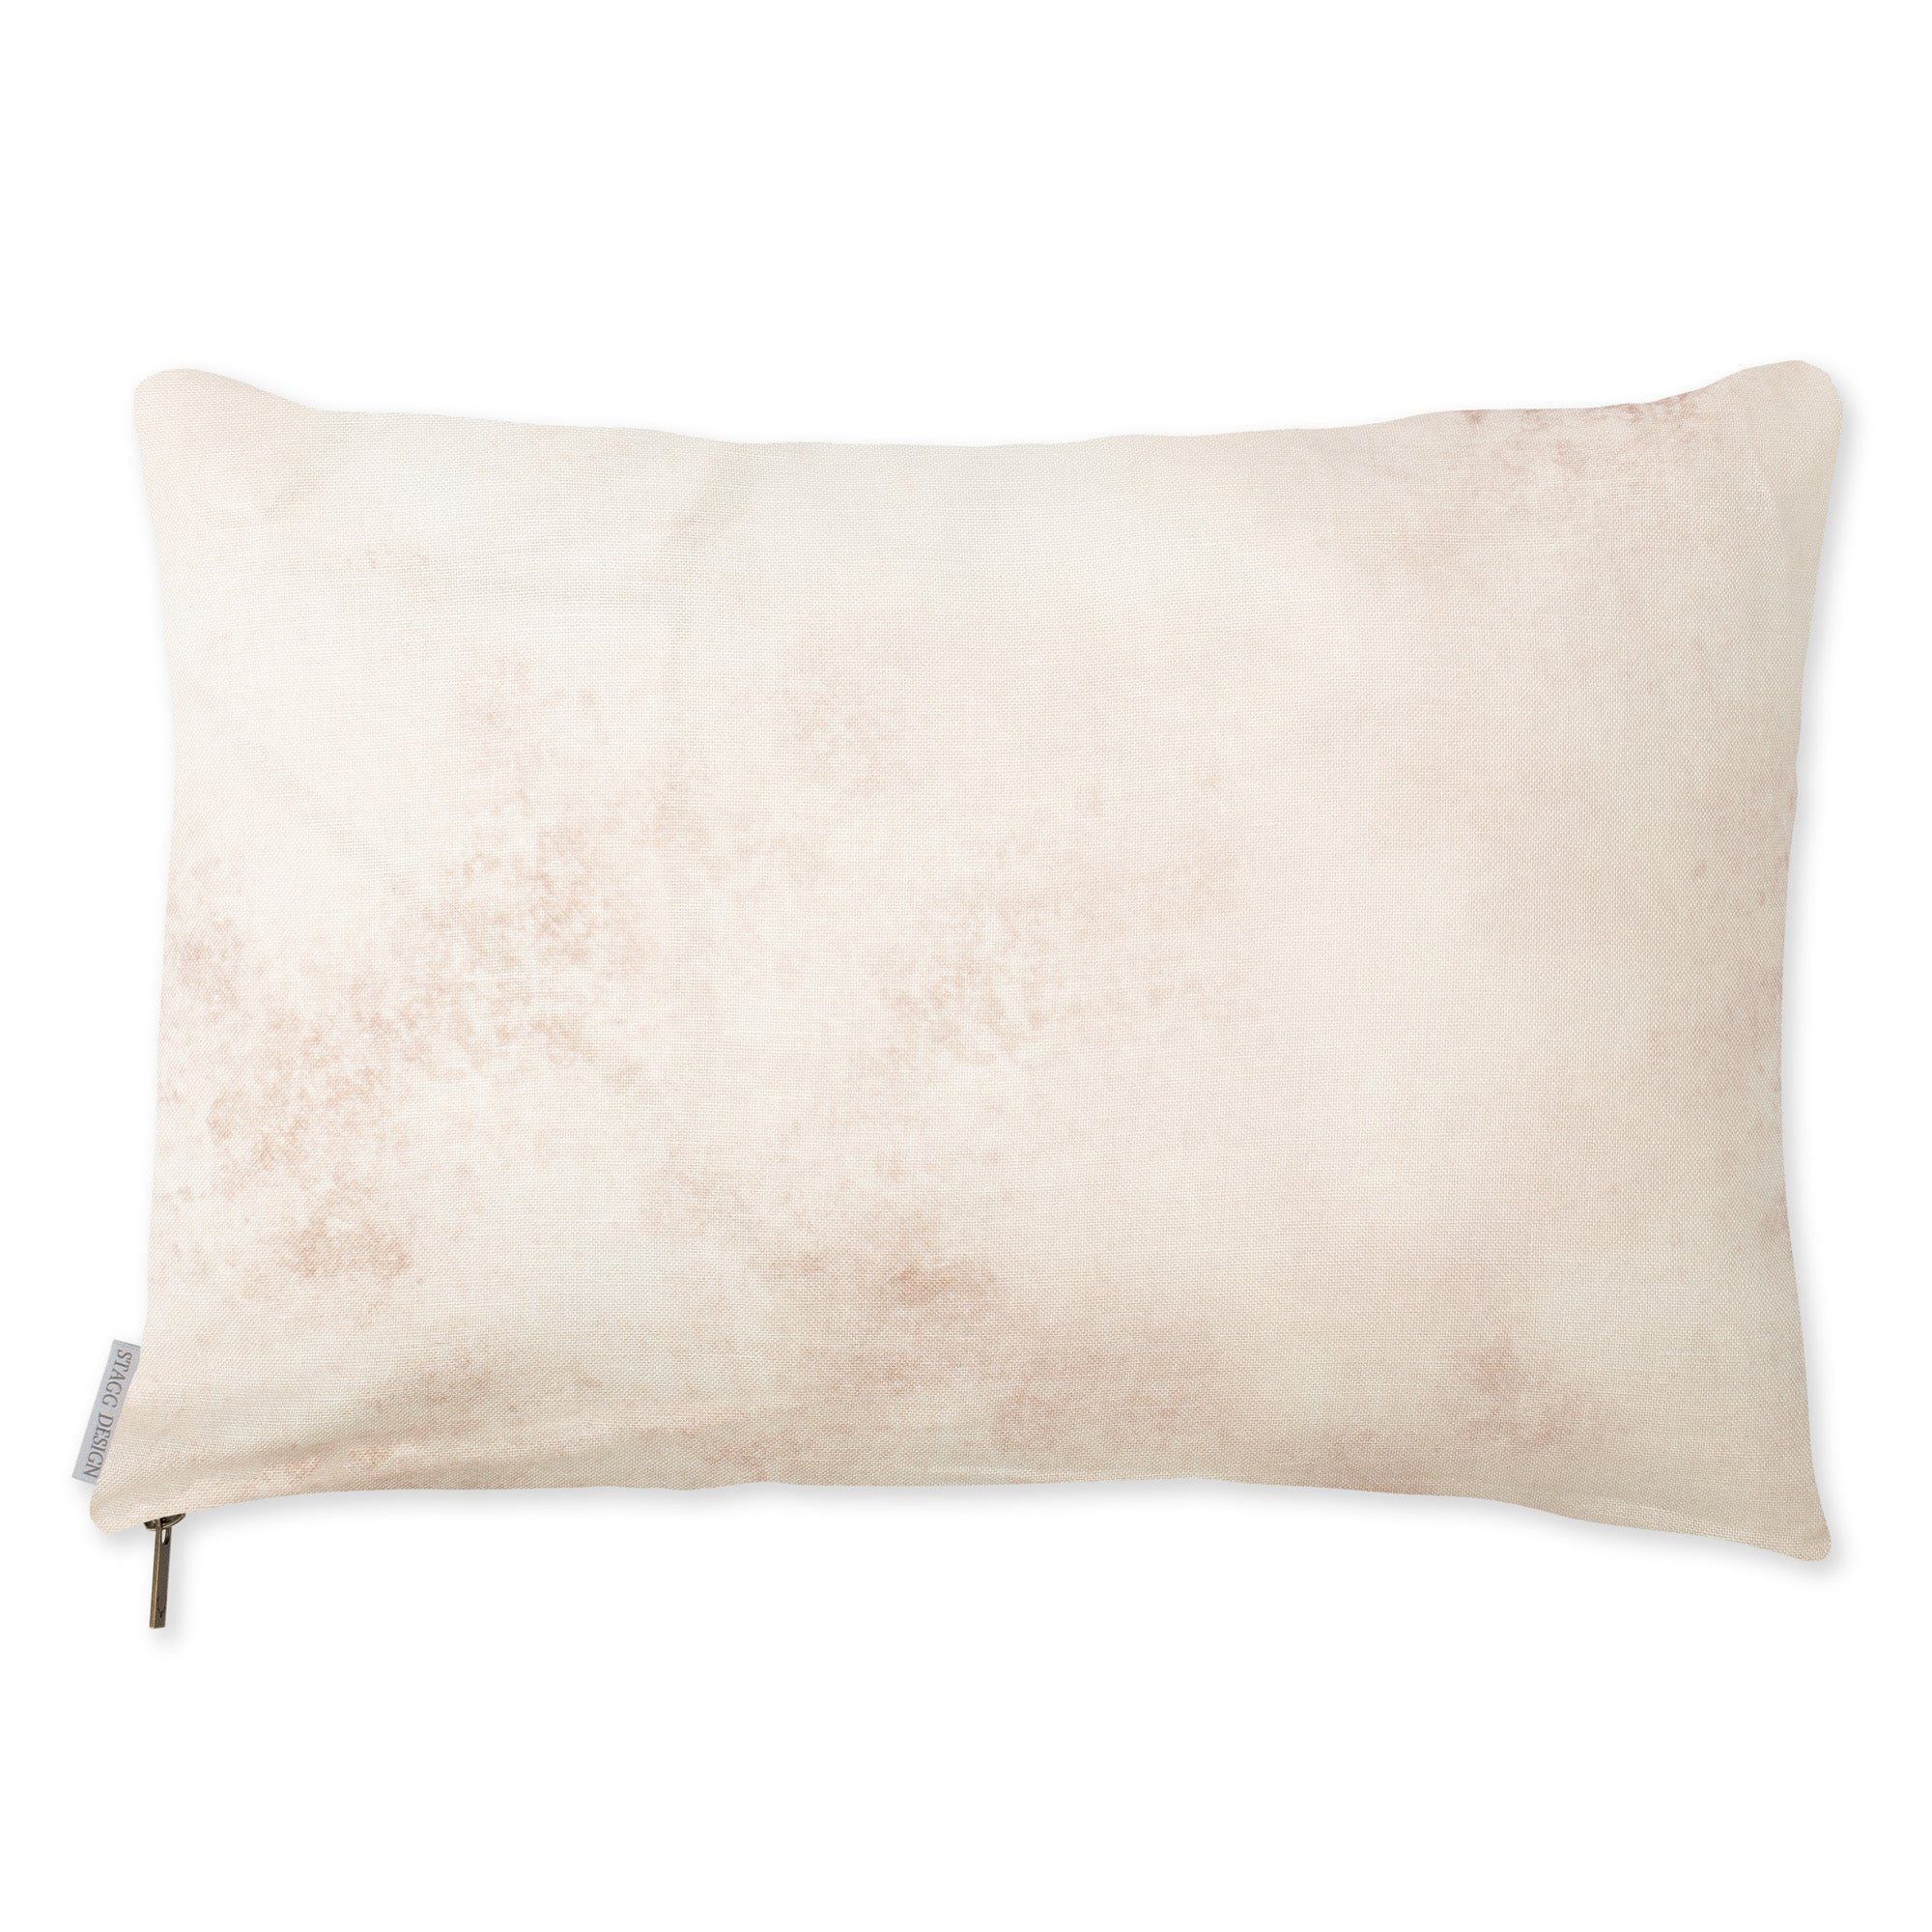 Brume Pillow - Dusty Pink